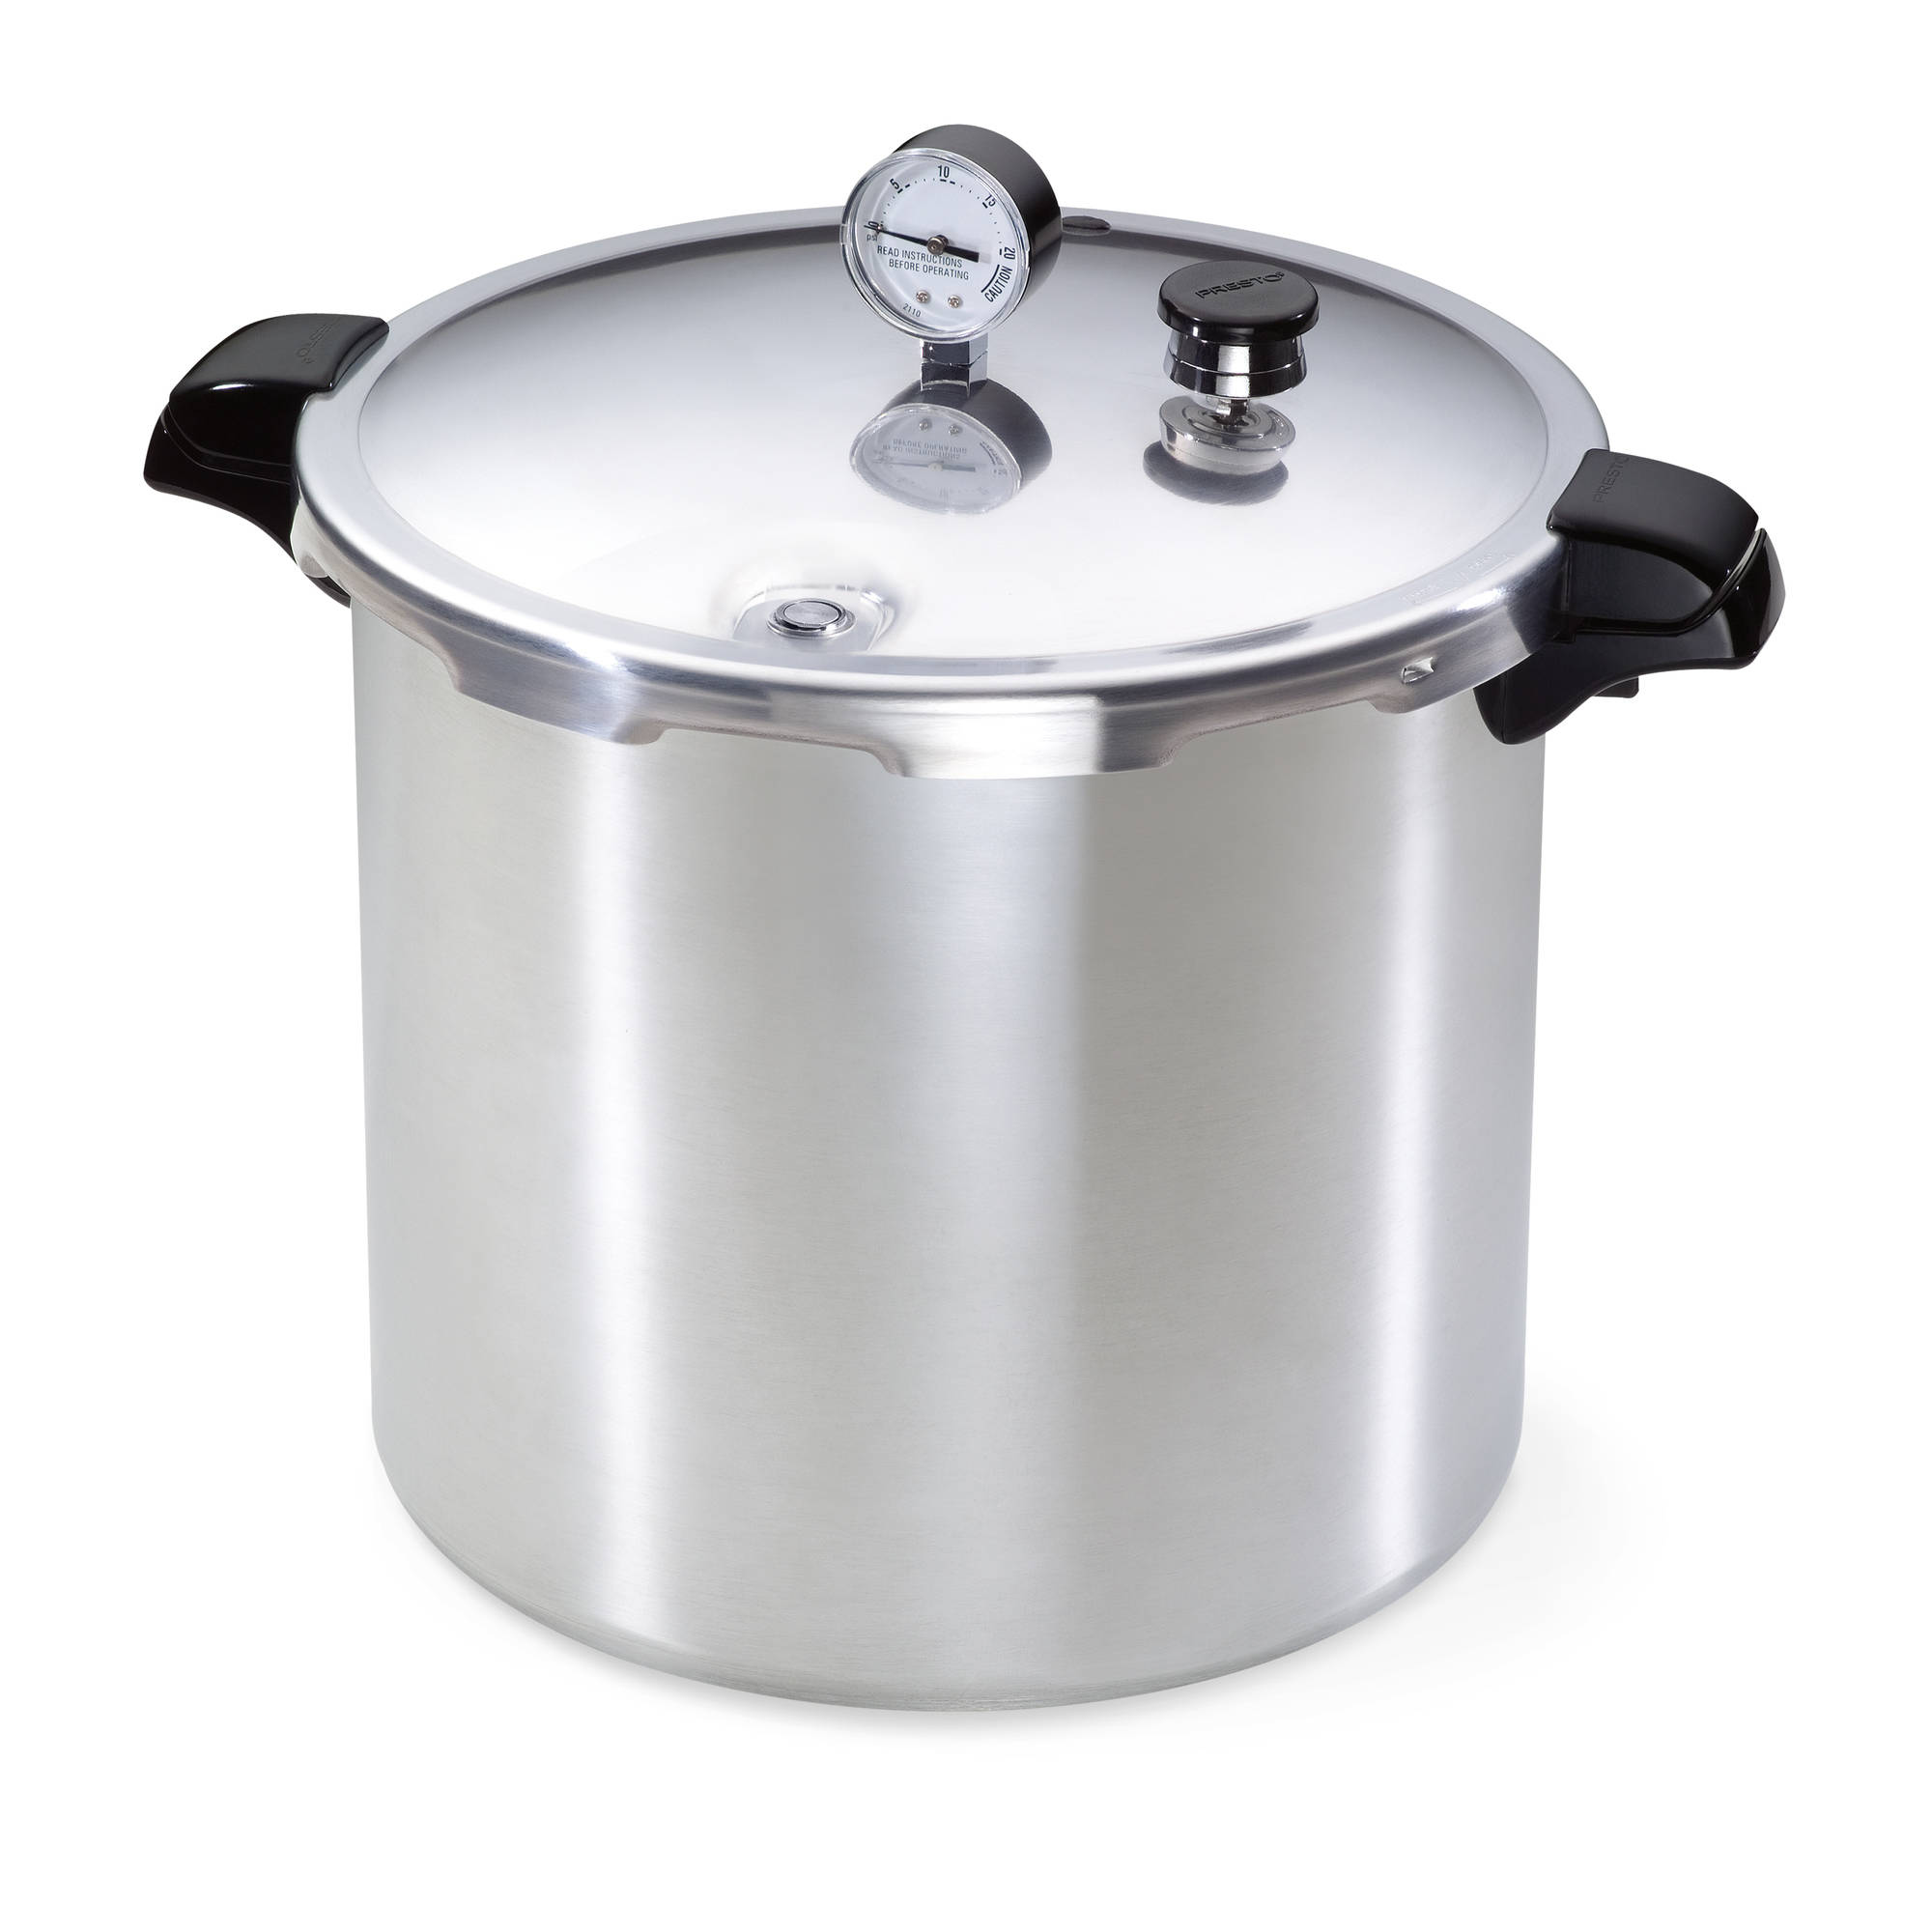 $110 for a Pressure Cooker -